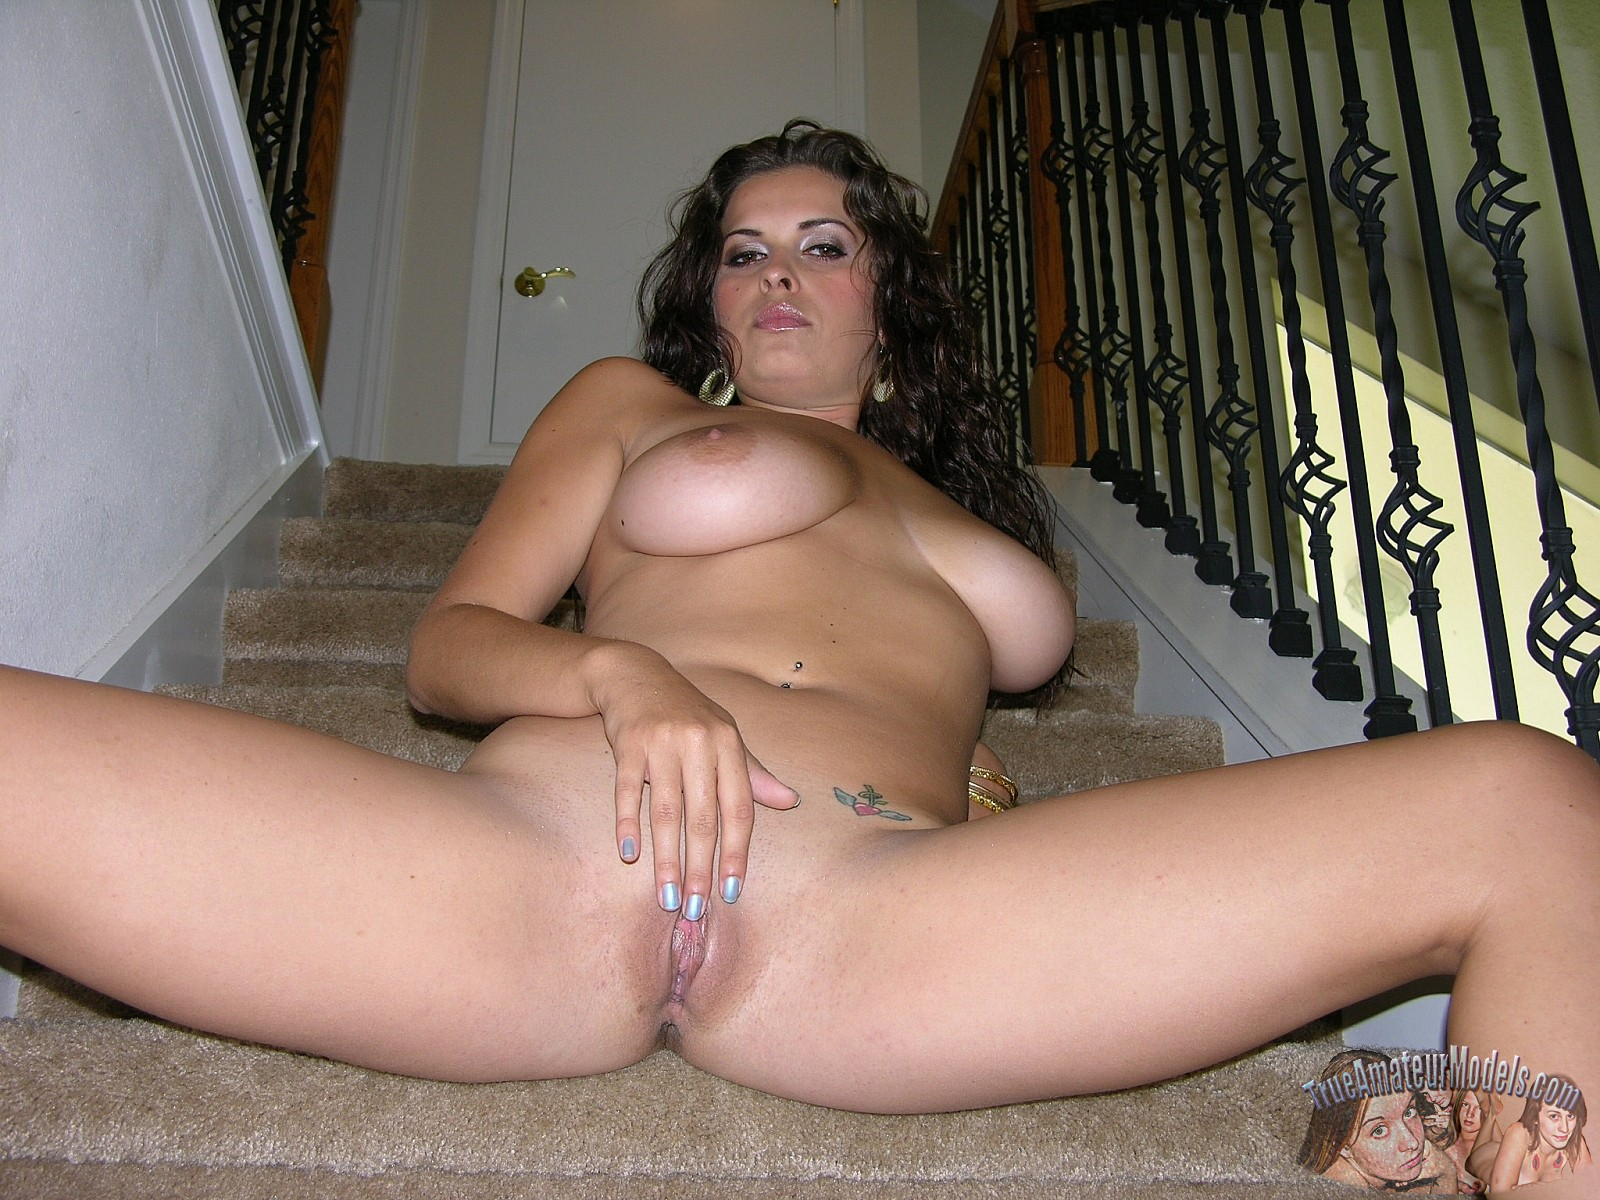 Beautiful women american nude